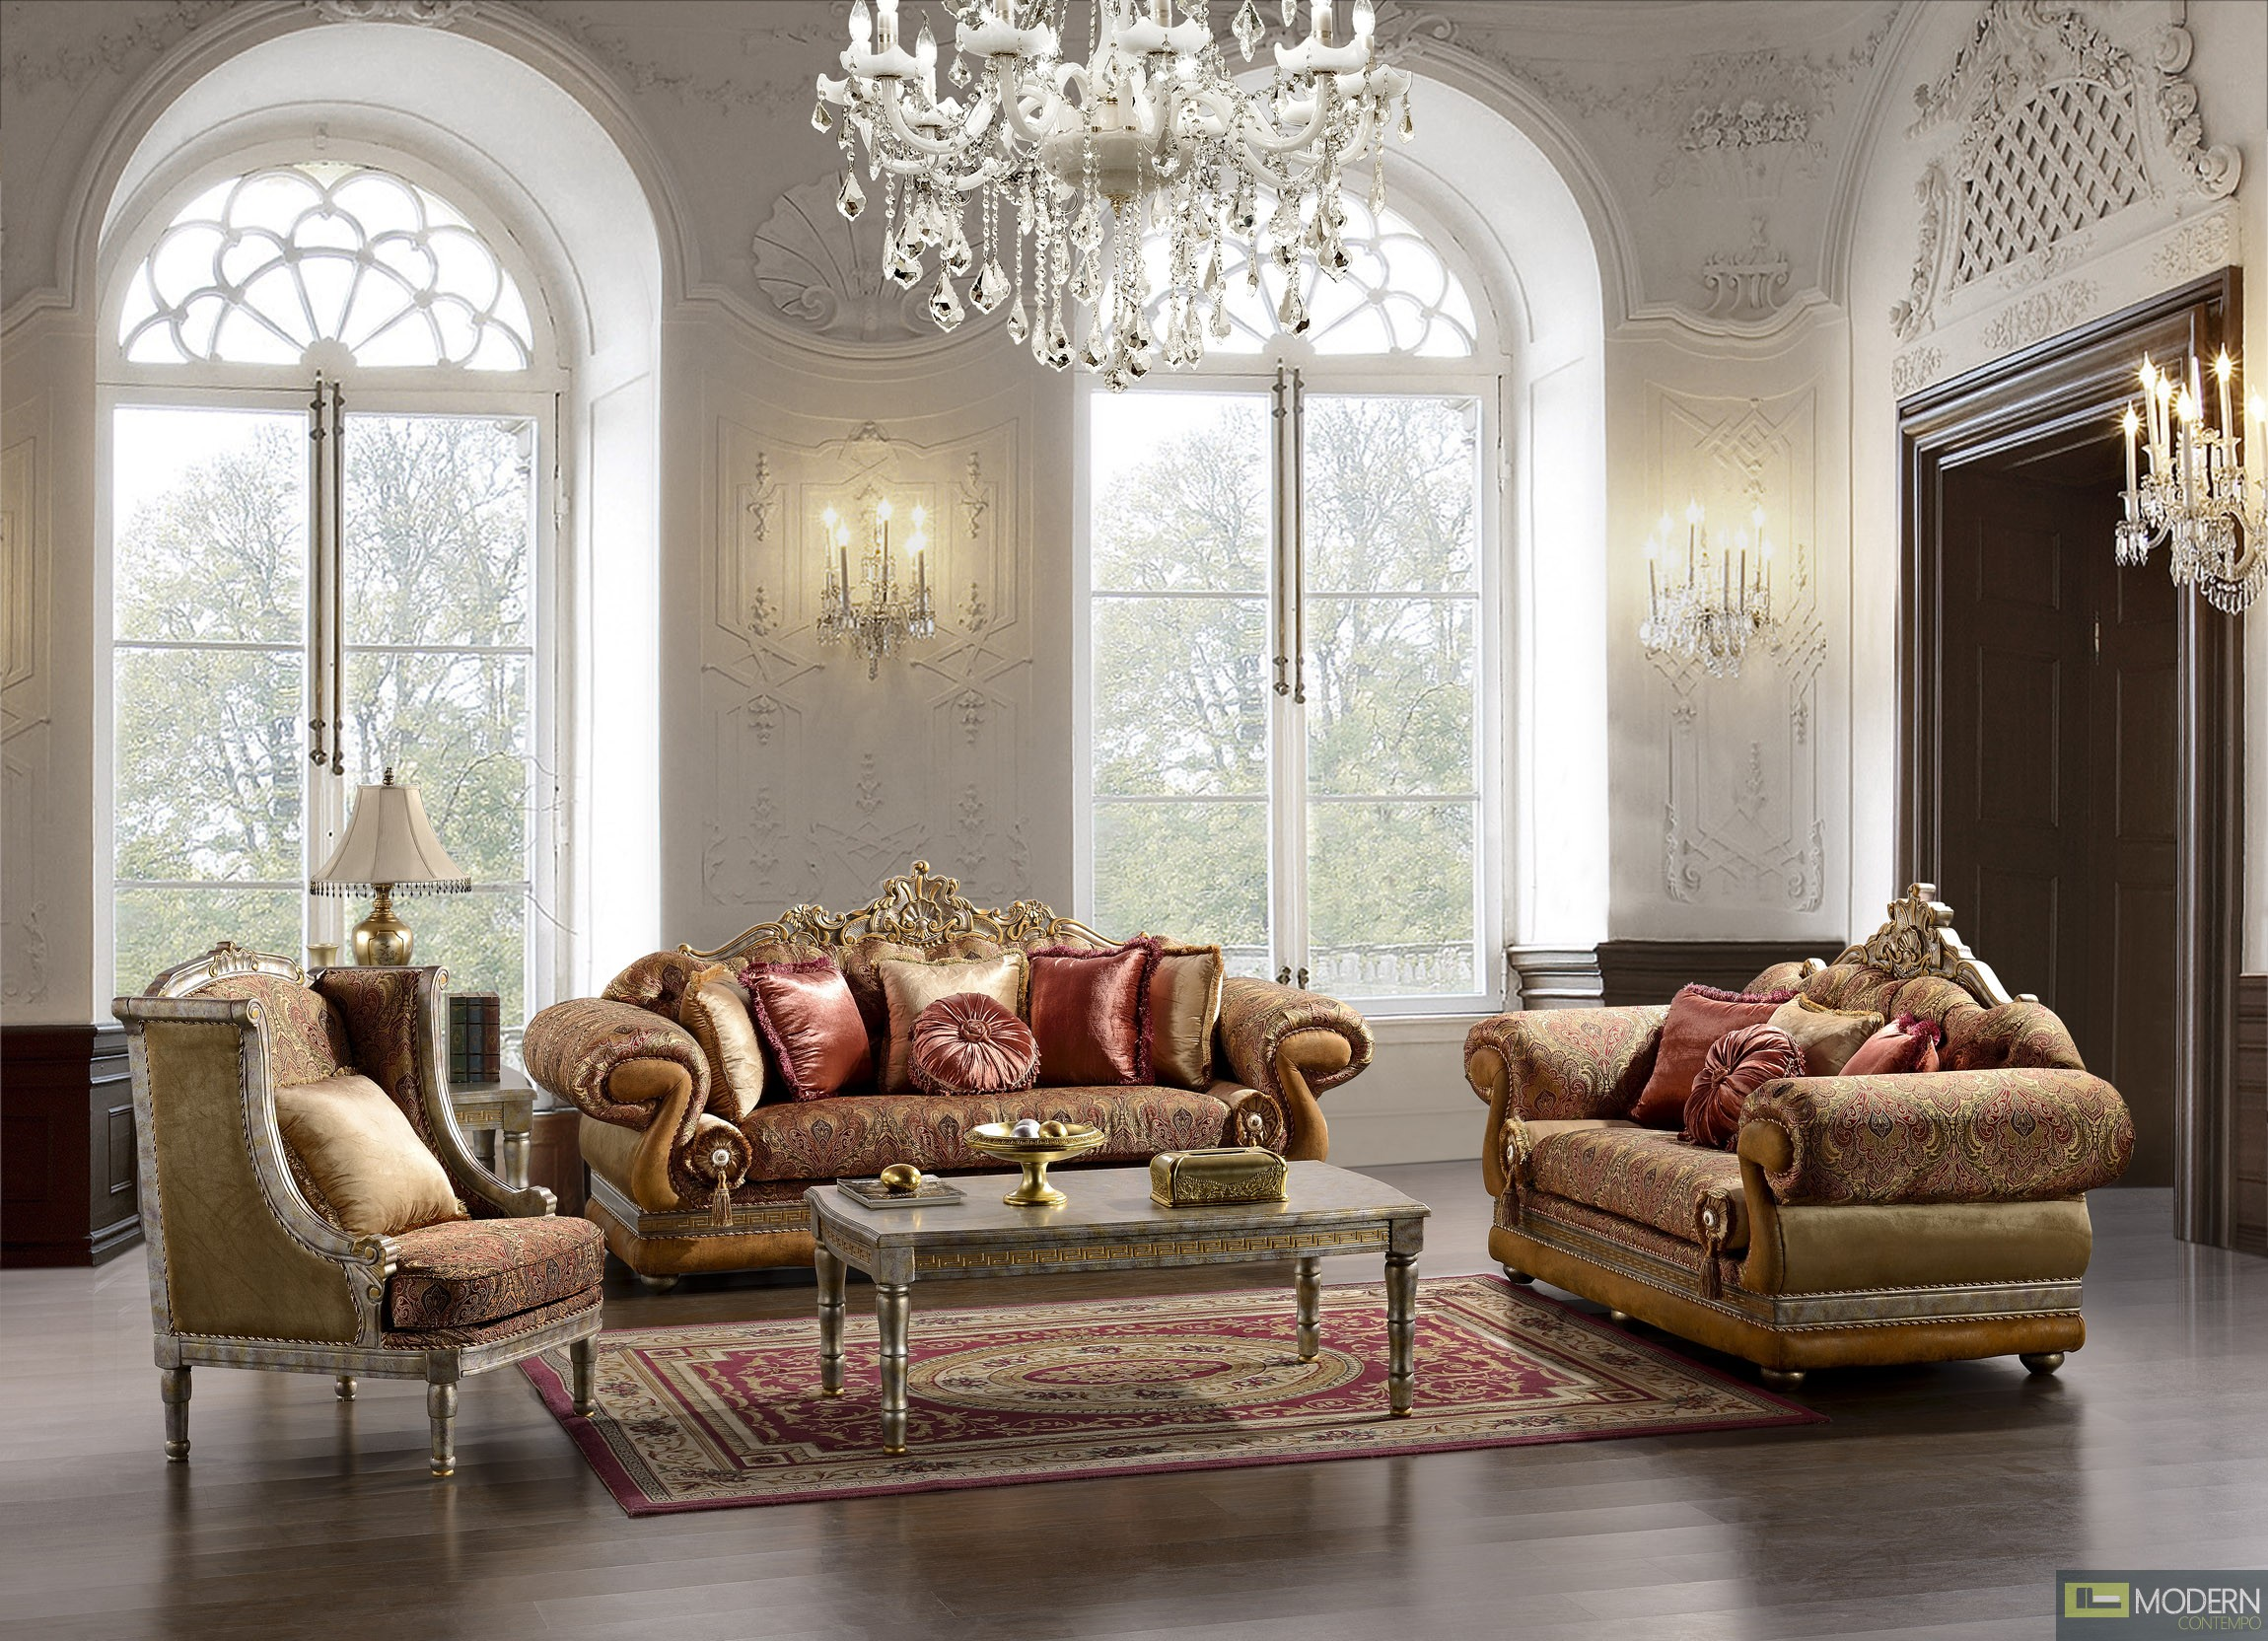 Traditional Sofa Set Formal Living Room Furniture MCHD1851 : hd 1851 from moderncontempo.com size 2300 x 1664 jpeg 1026kB